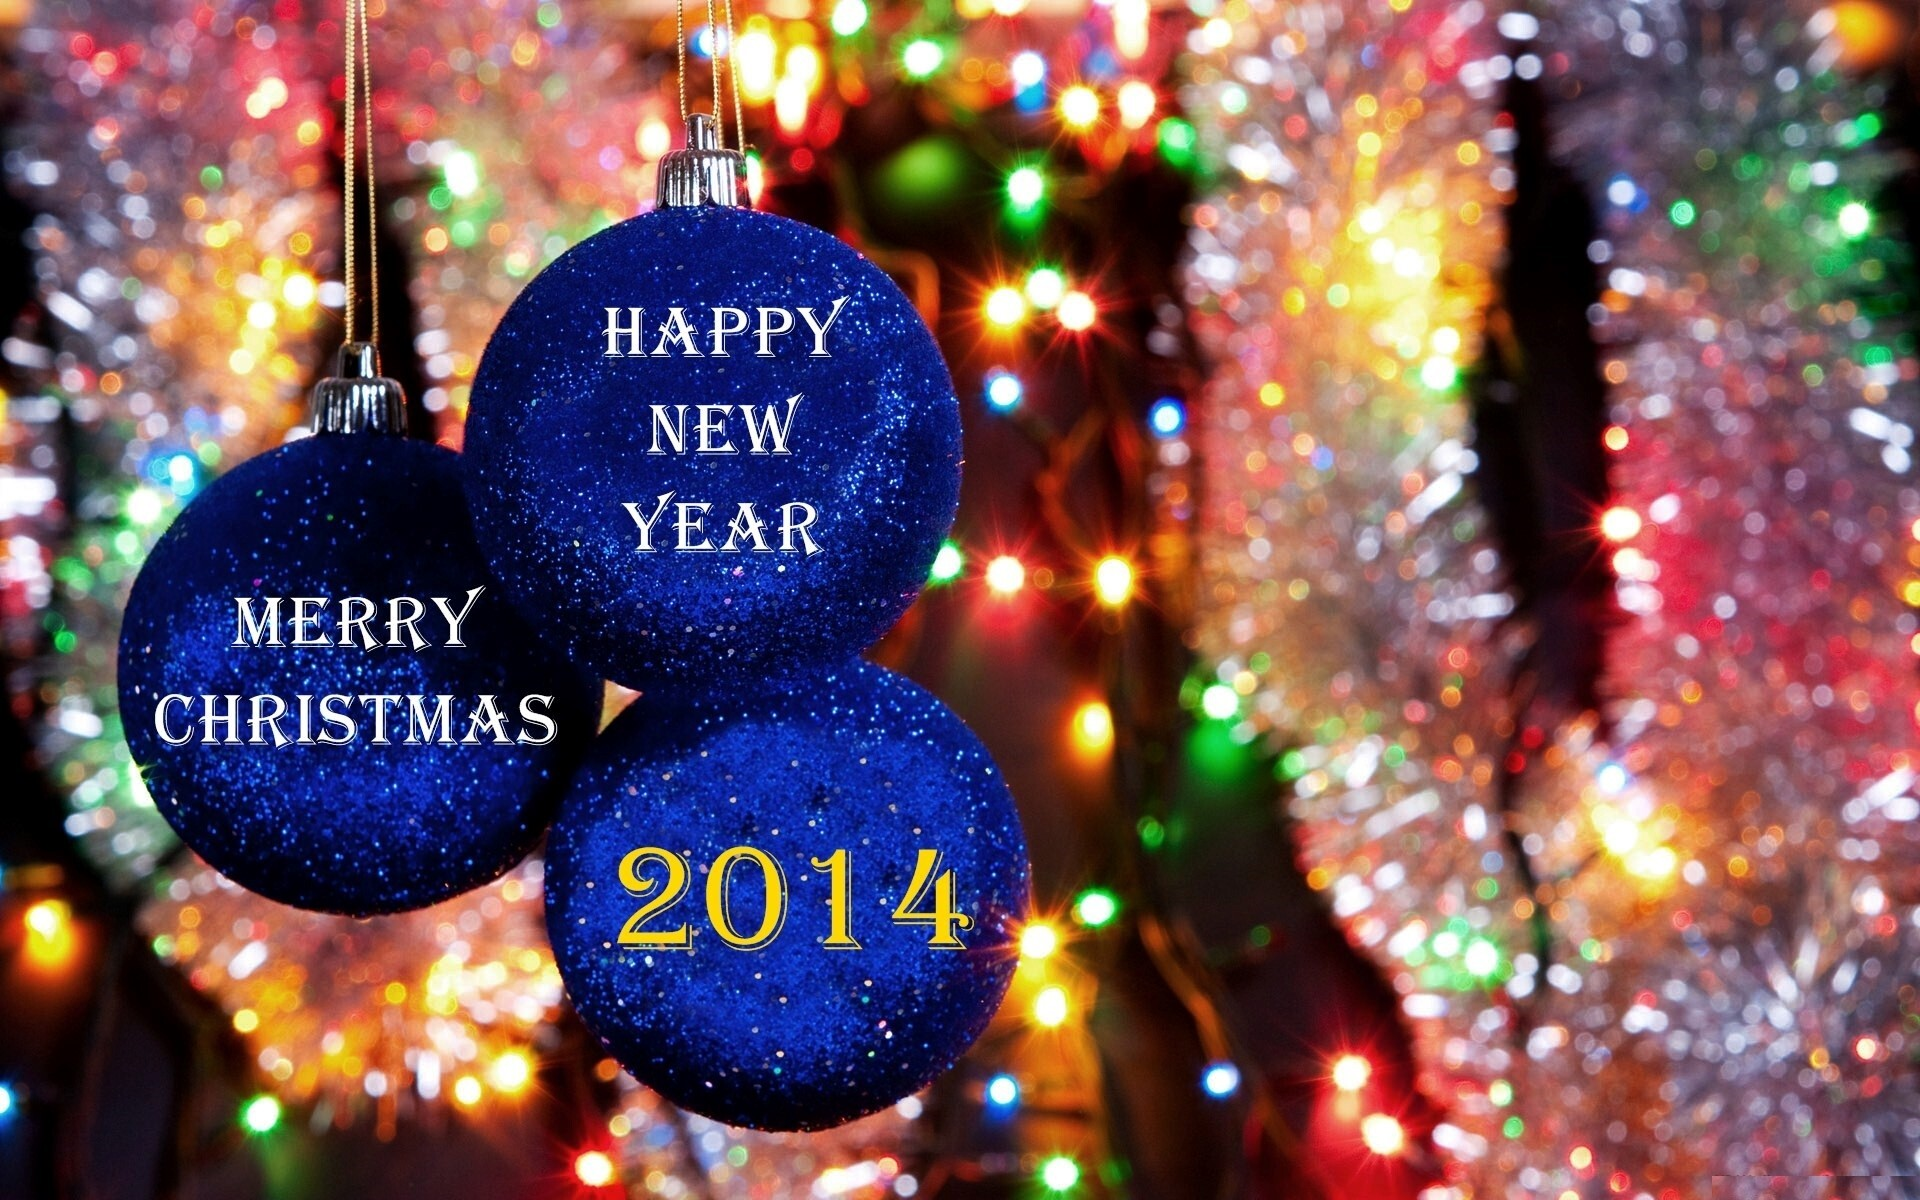 Merry Christmas 2014 New Year Wallpaper Download | HD Wallpapers